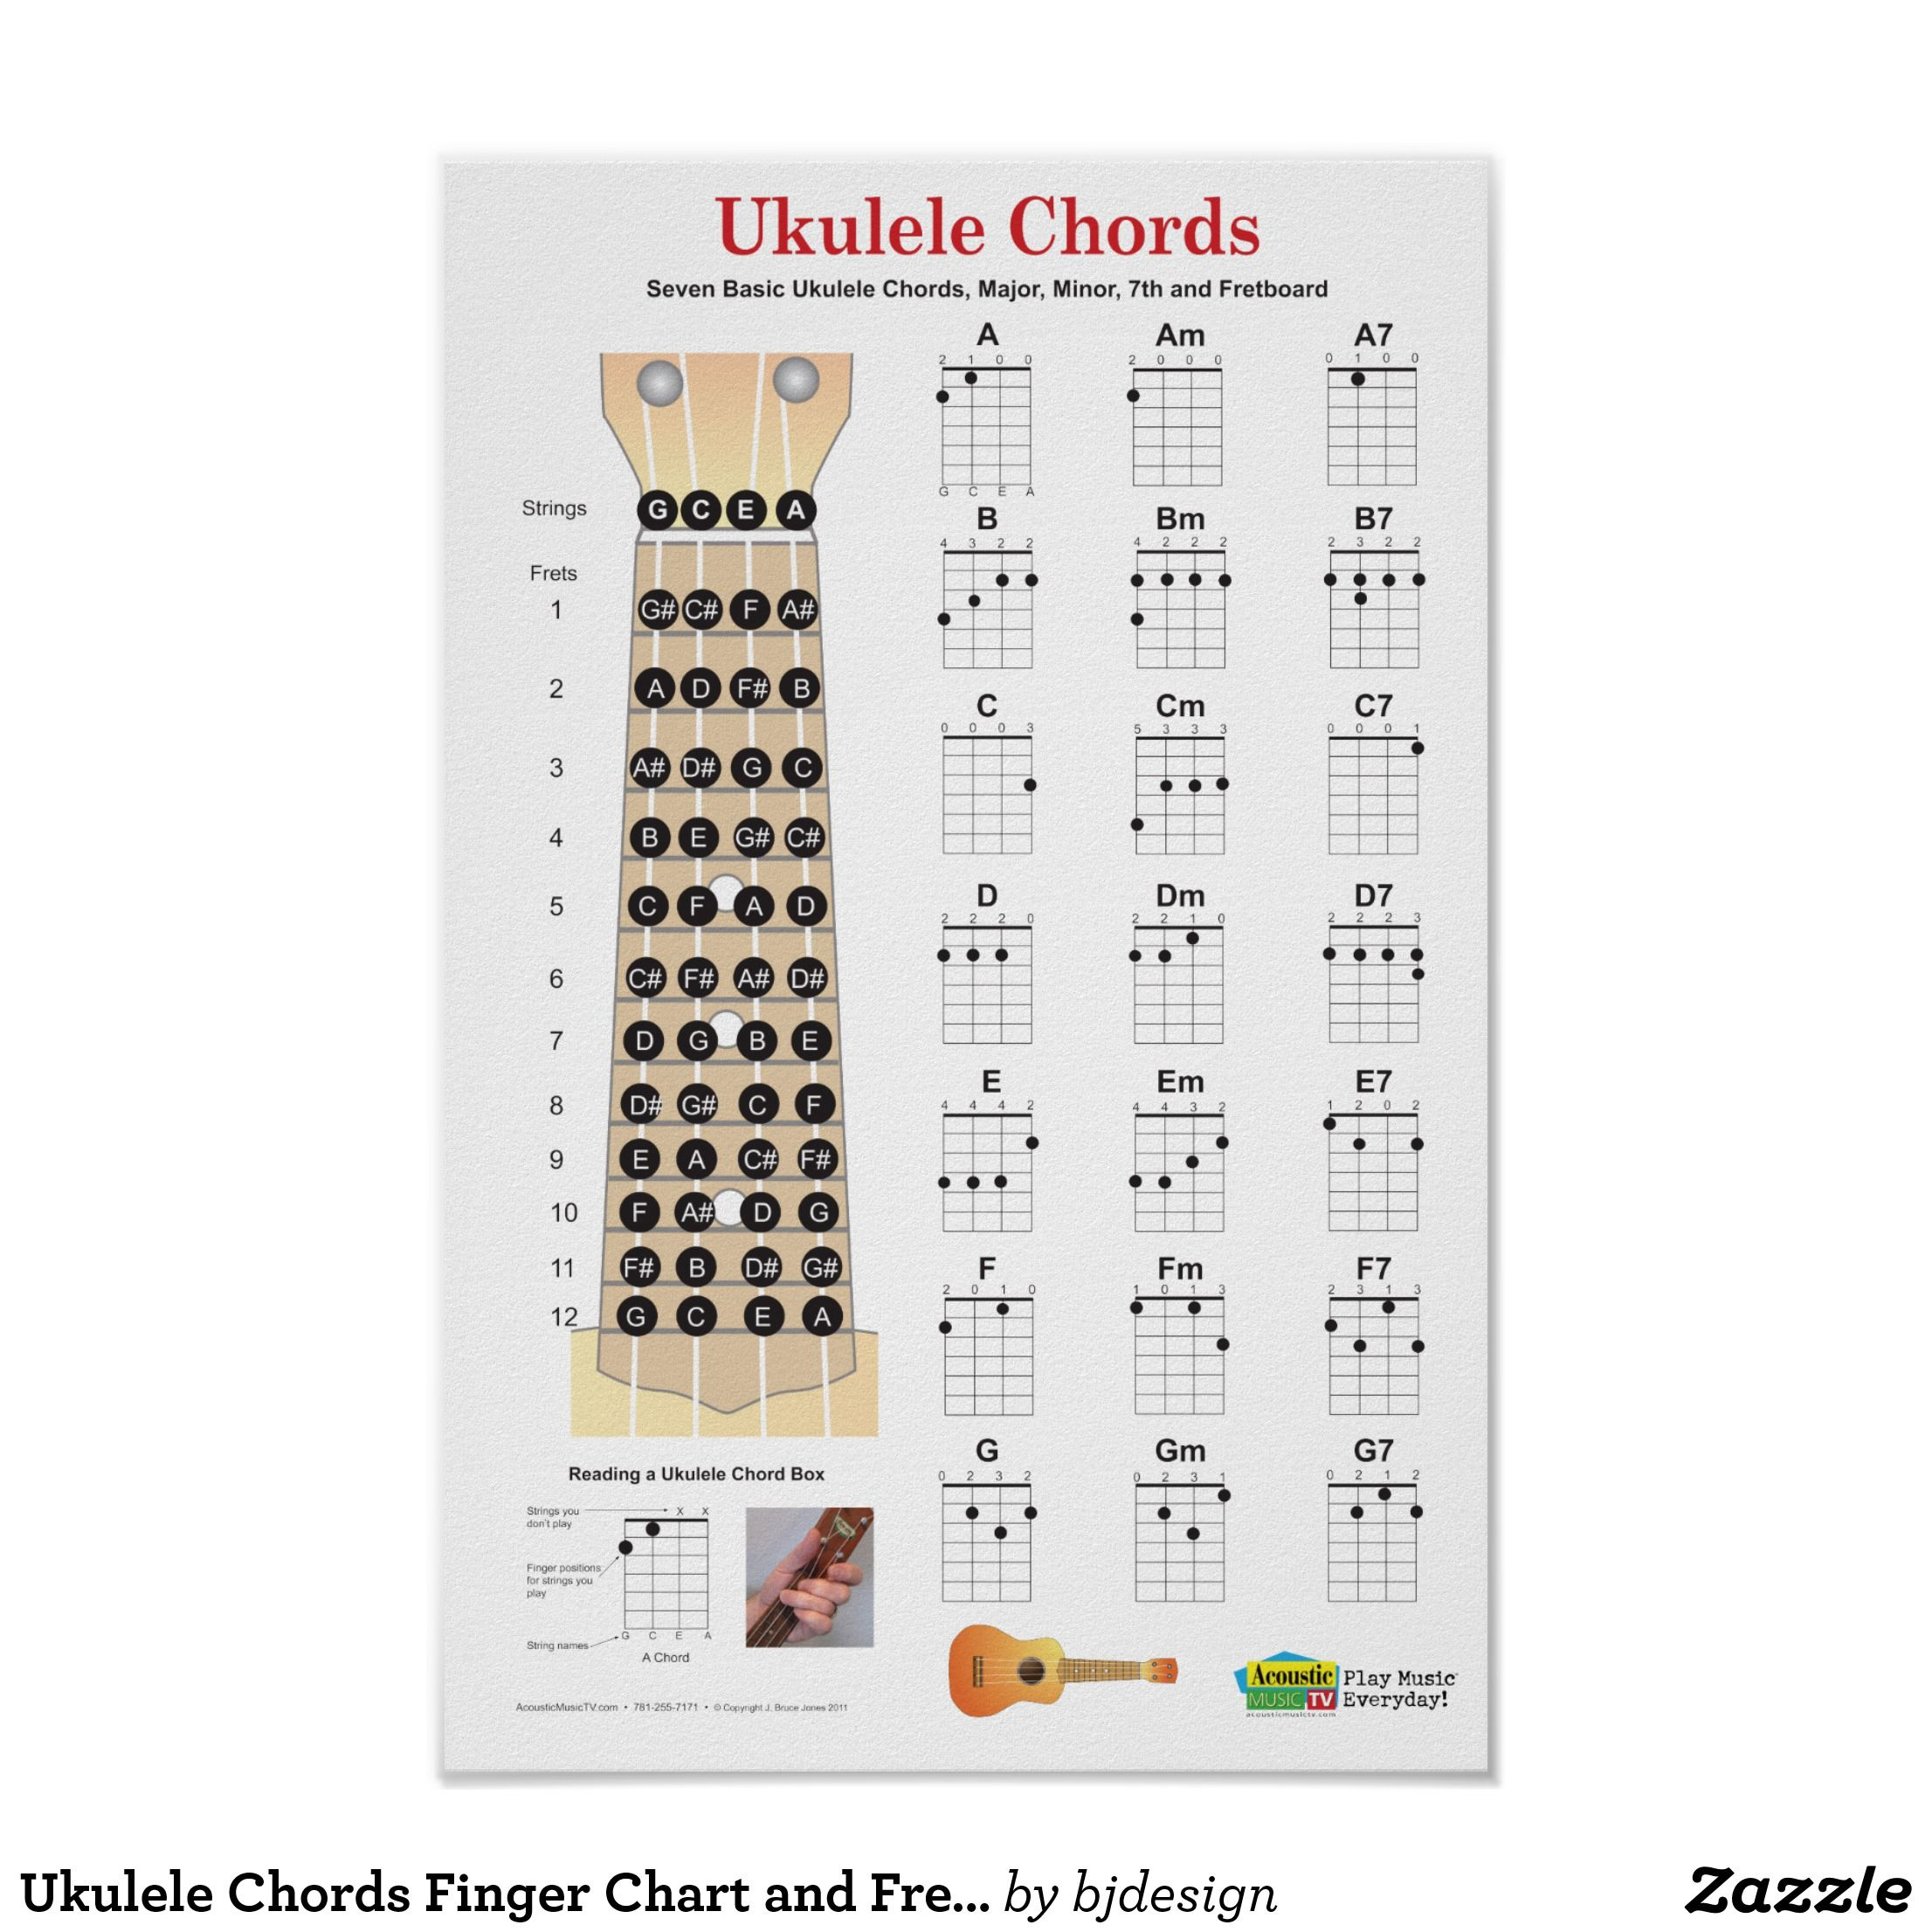 Chords finger chart and fretboard poster ukulele chords finger chart and fretboard poster hexwebz Choice Image